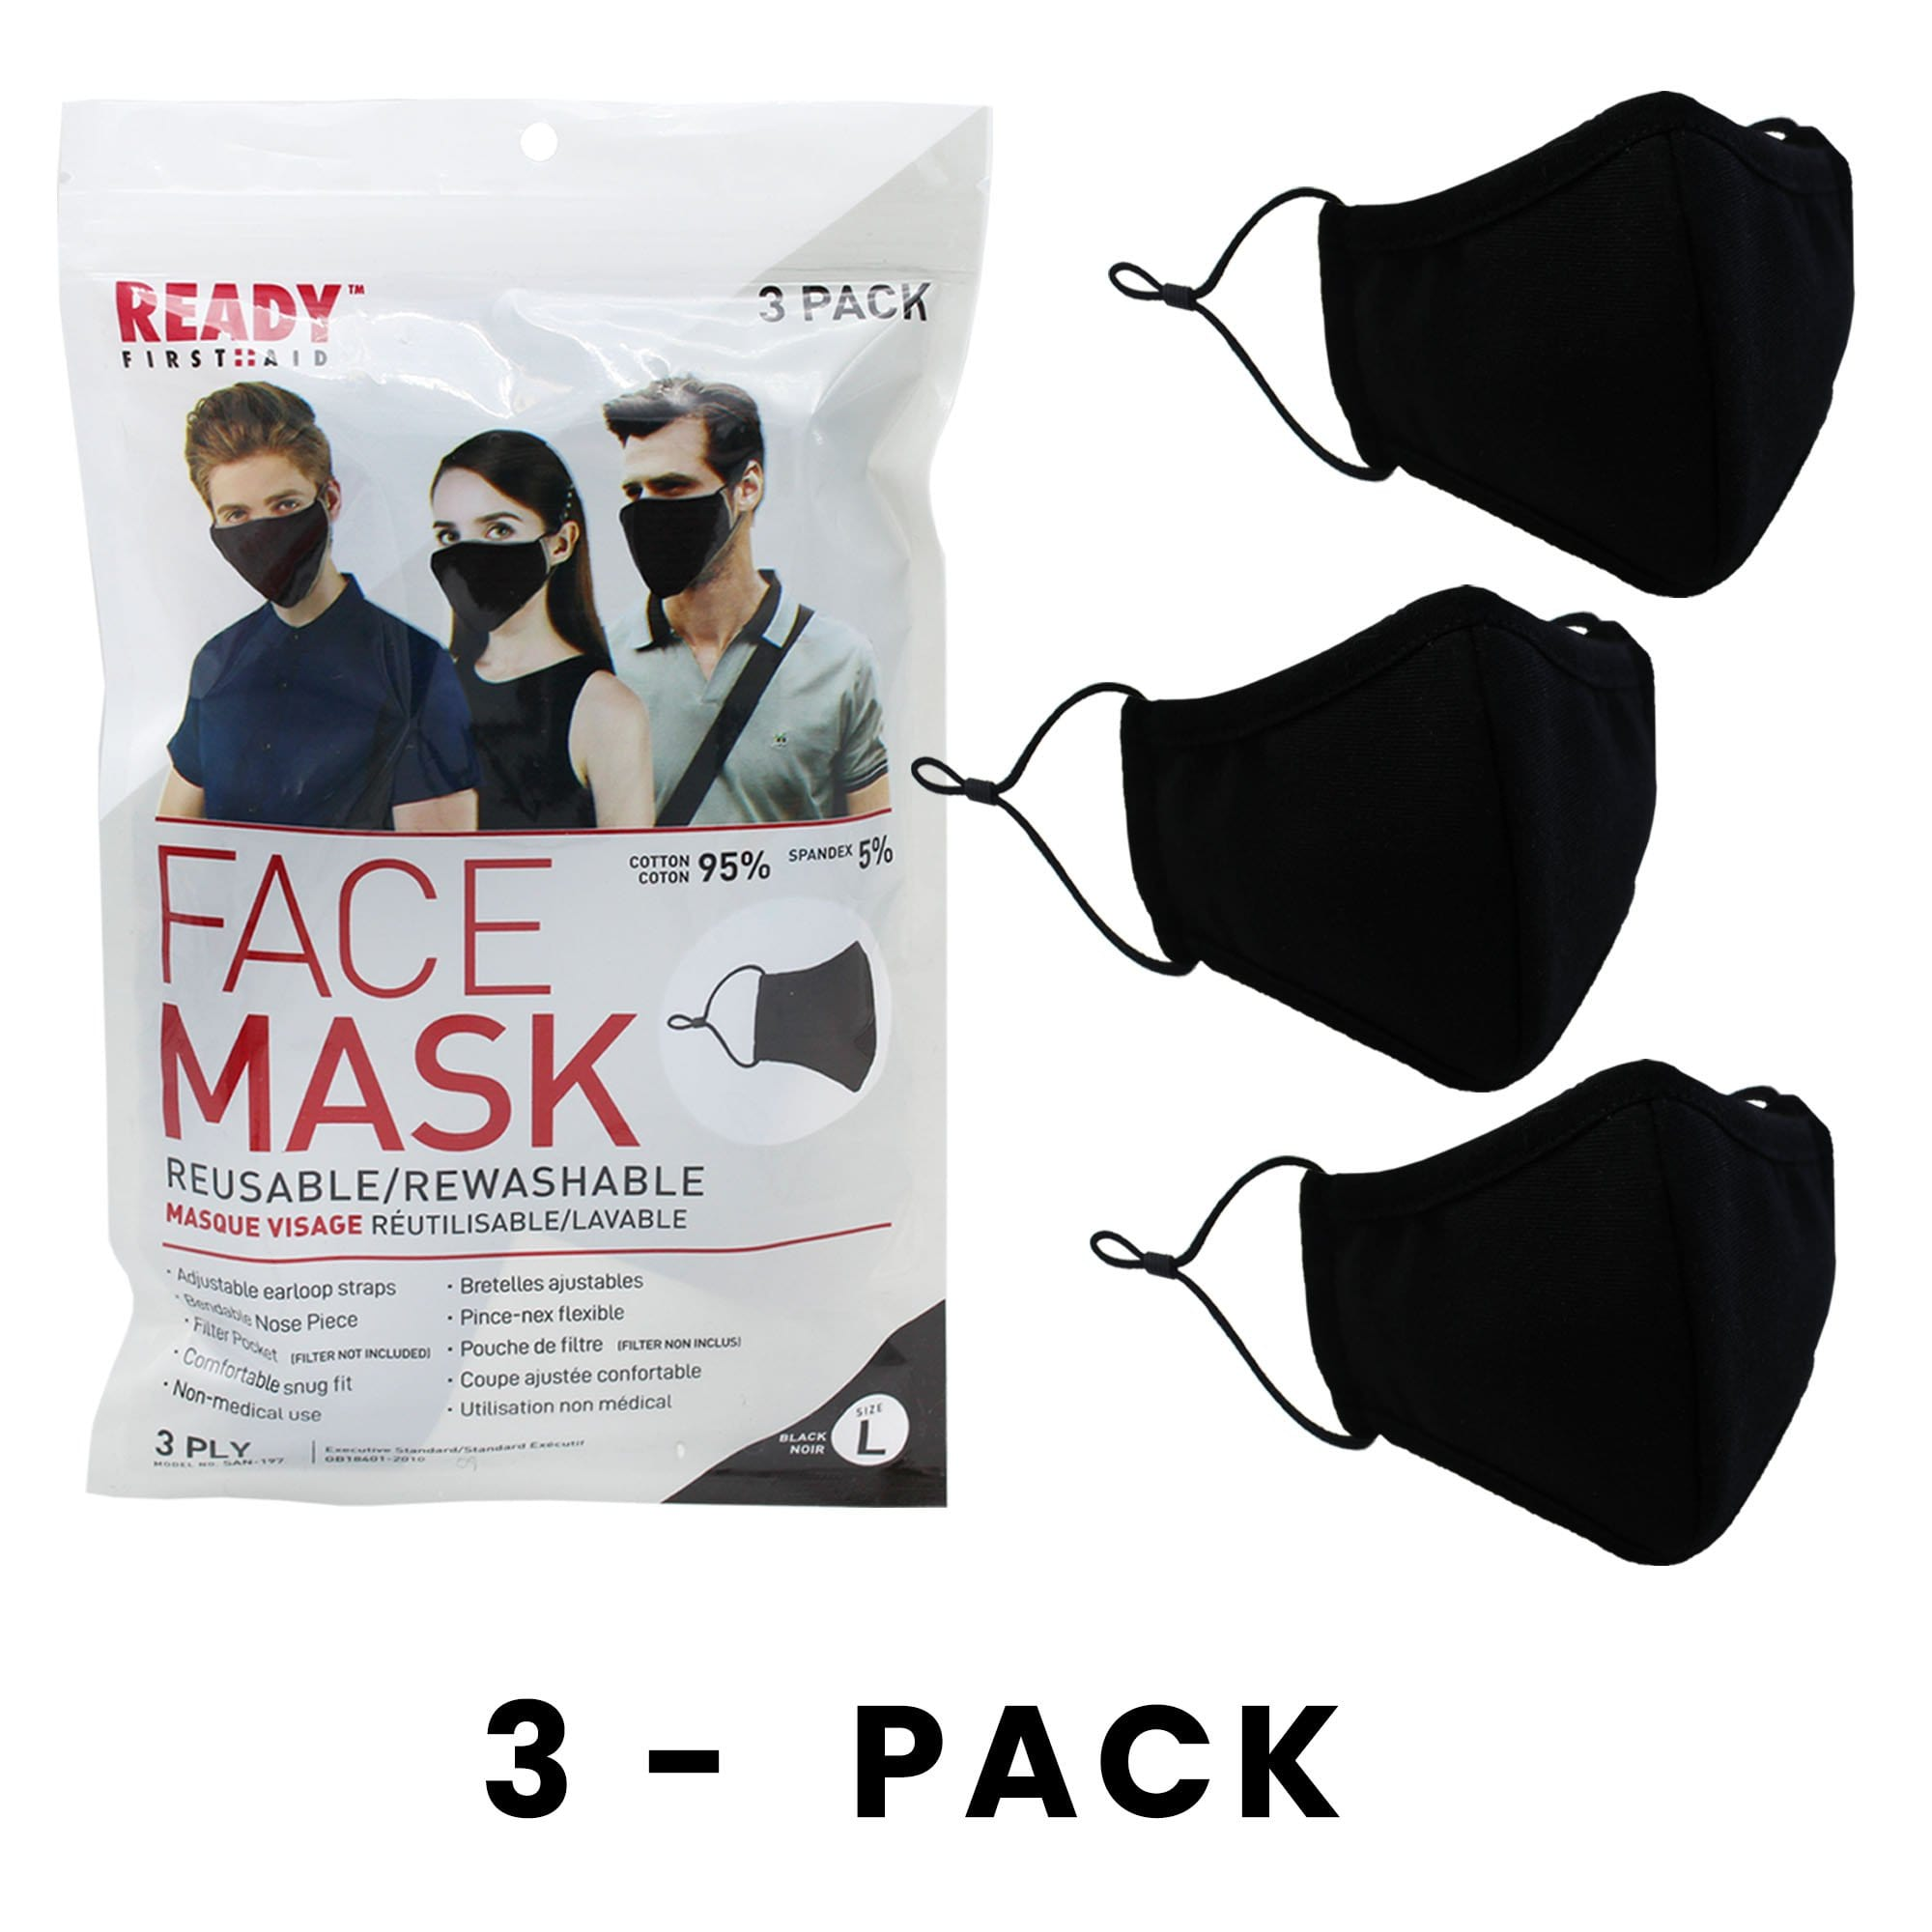 Reusable Face Mask, 3-Layer, Black, V2, Pack of 3 - Ready First Aid